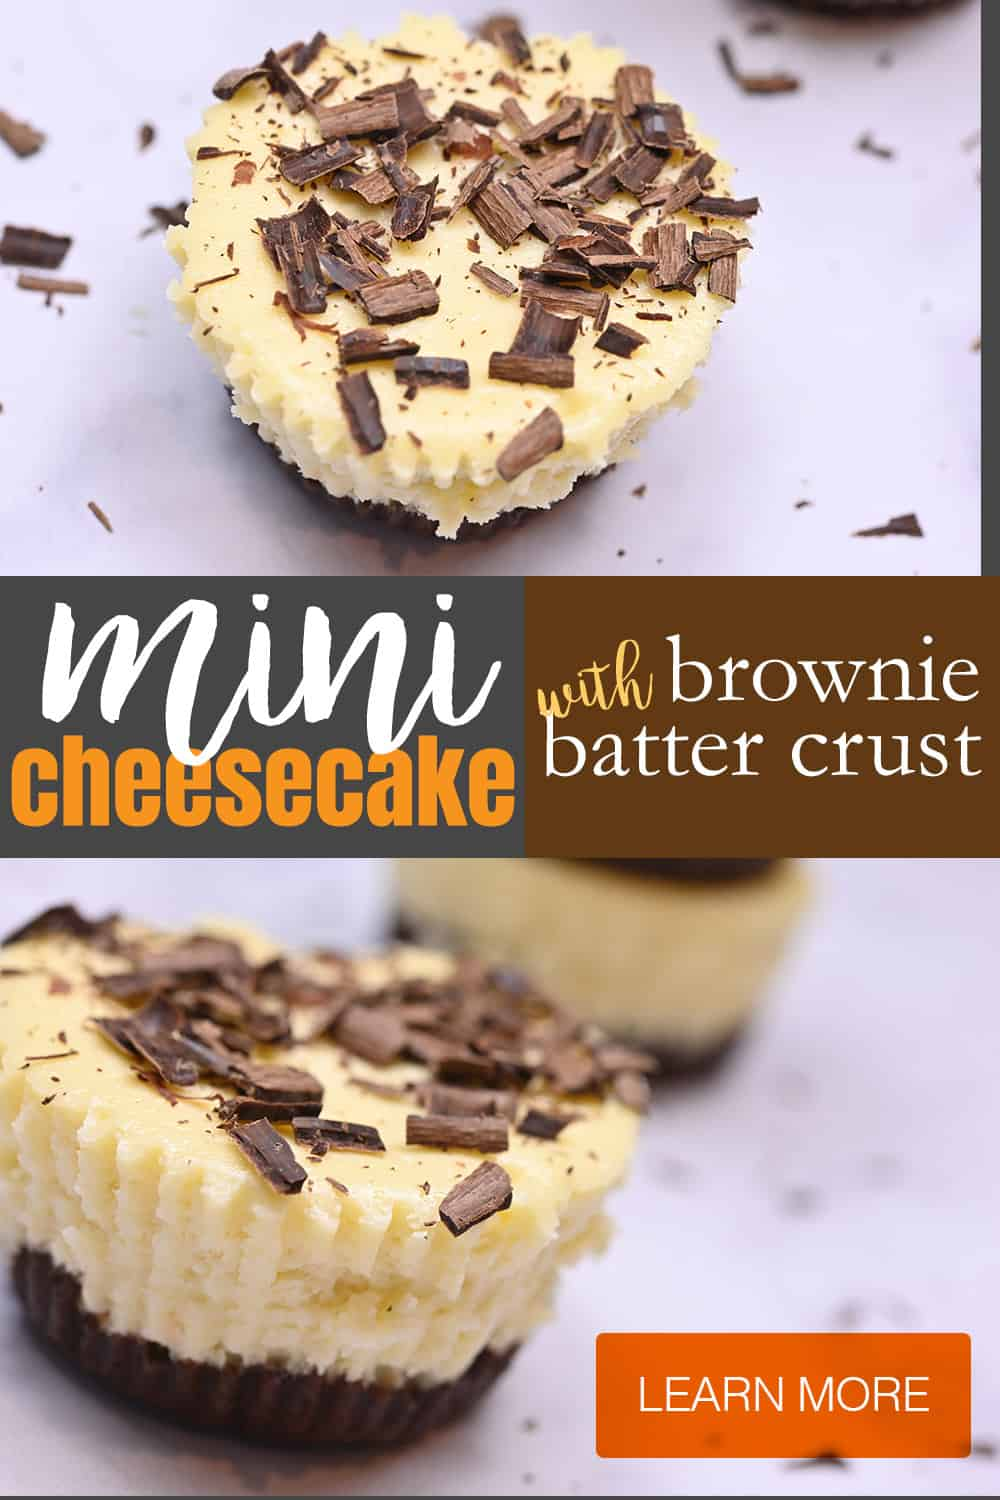 keto mini cheesecake with brownie batter crust image for p interest